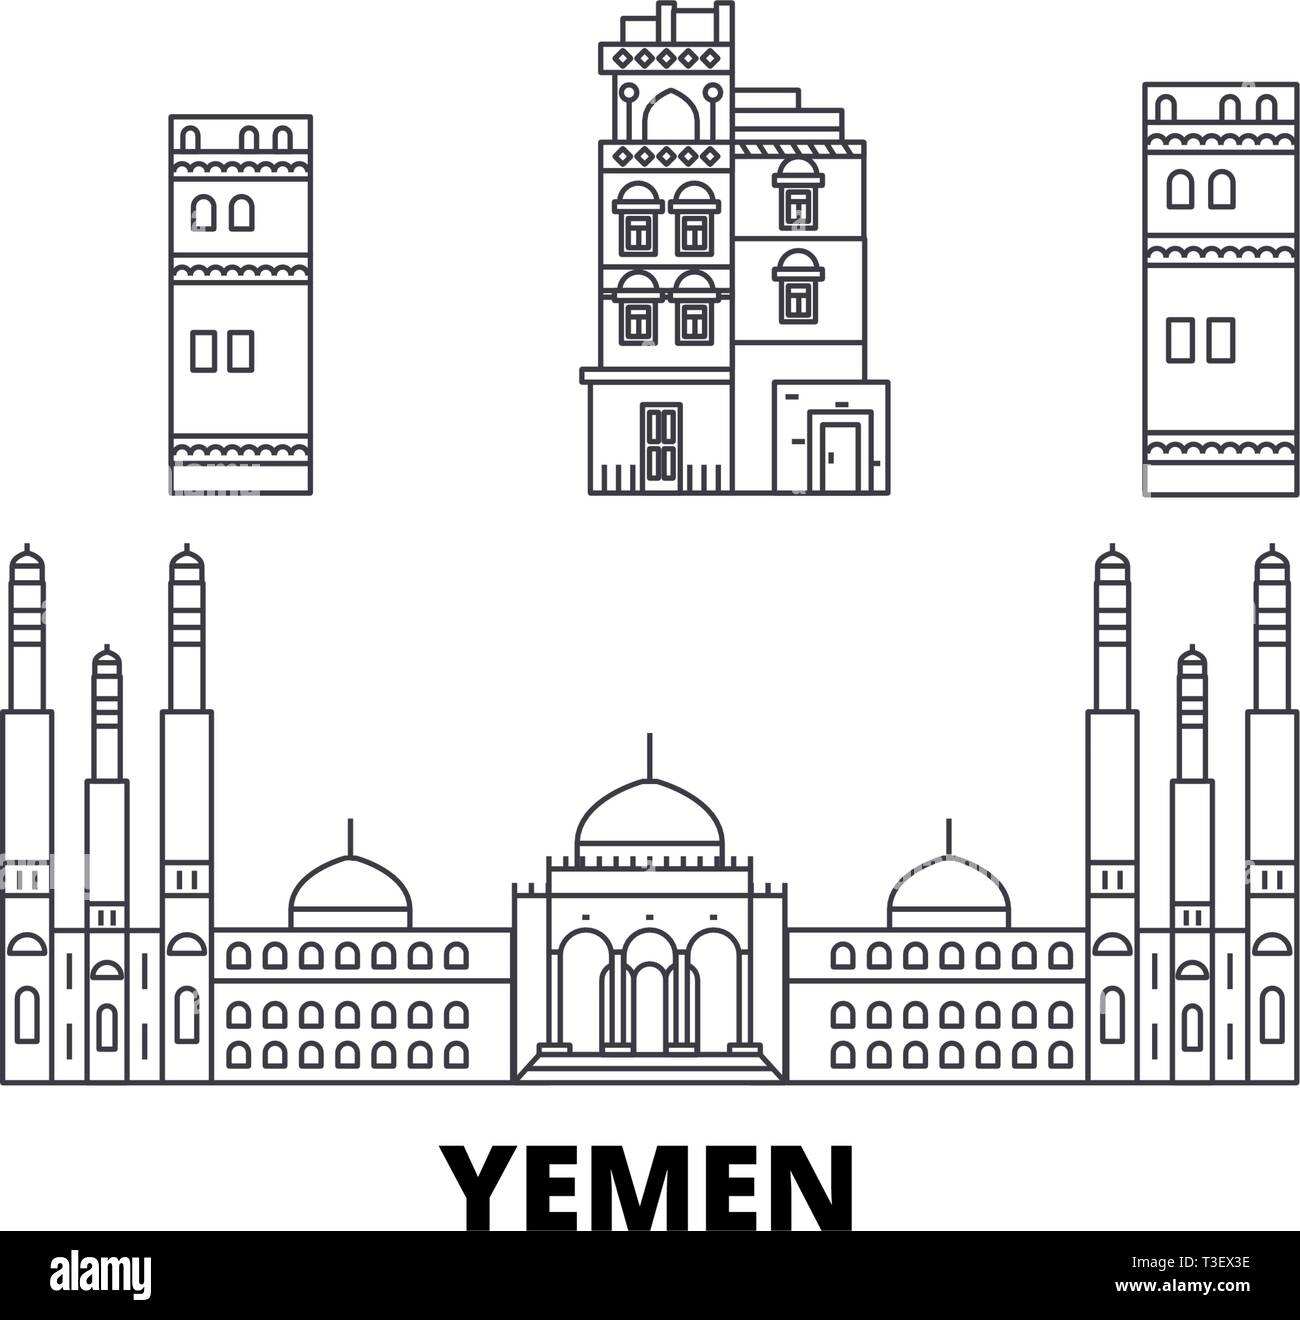 Yemen, Sanaa line travel skyline set. Yemen, Sanaa outline city vector illustration, symbol, travel sights, landmarks. Stock Vector